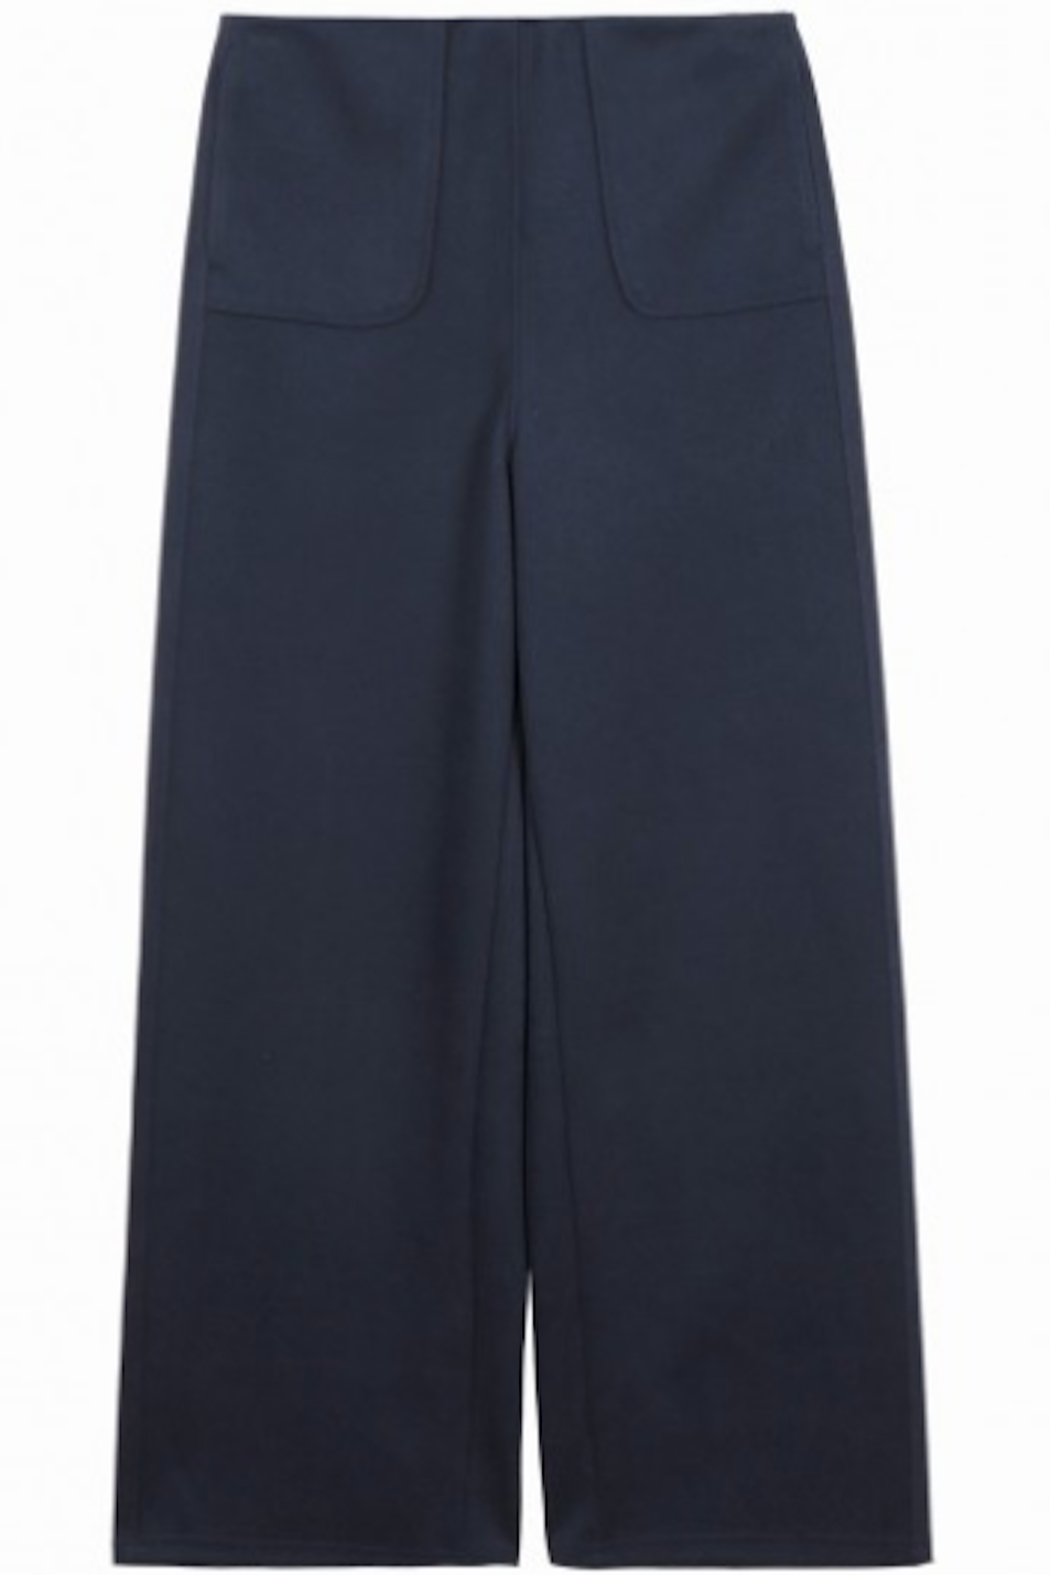 FRNCH Woven Peg Pants - Front Cropped Image